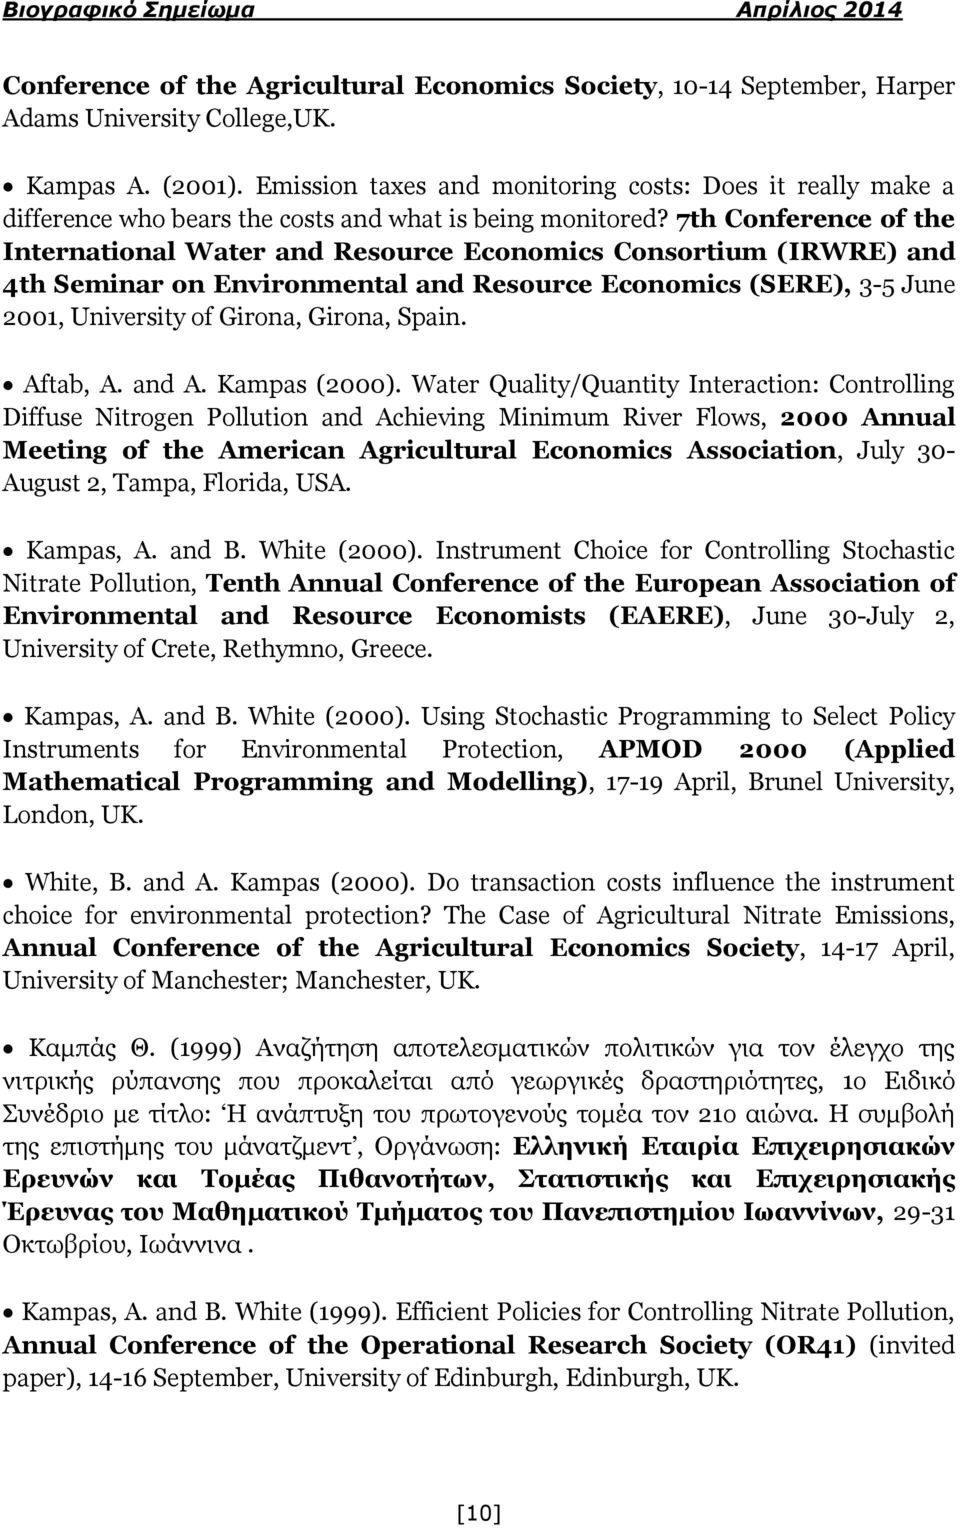 7th Conference of the International Water and Resource Economics Consortium (ΙRWRE) and 4th Seminar on Environmental and Resource Economics (SERE), 3-5 June 2001, University of Girona, Girona, Spain.